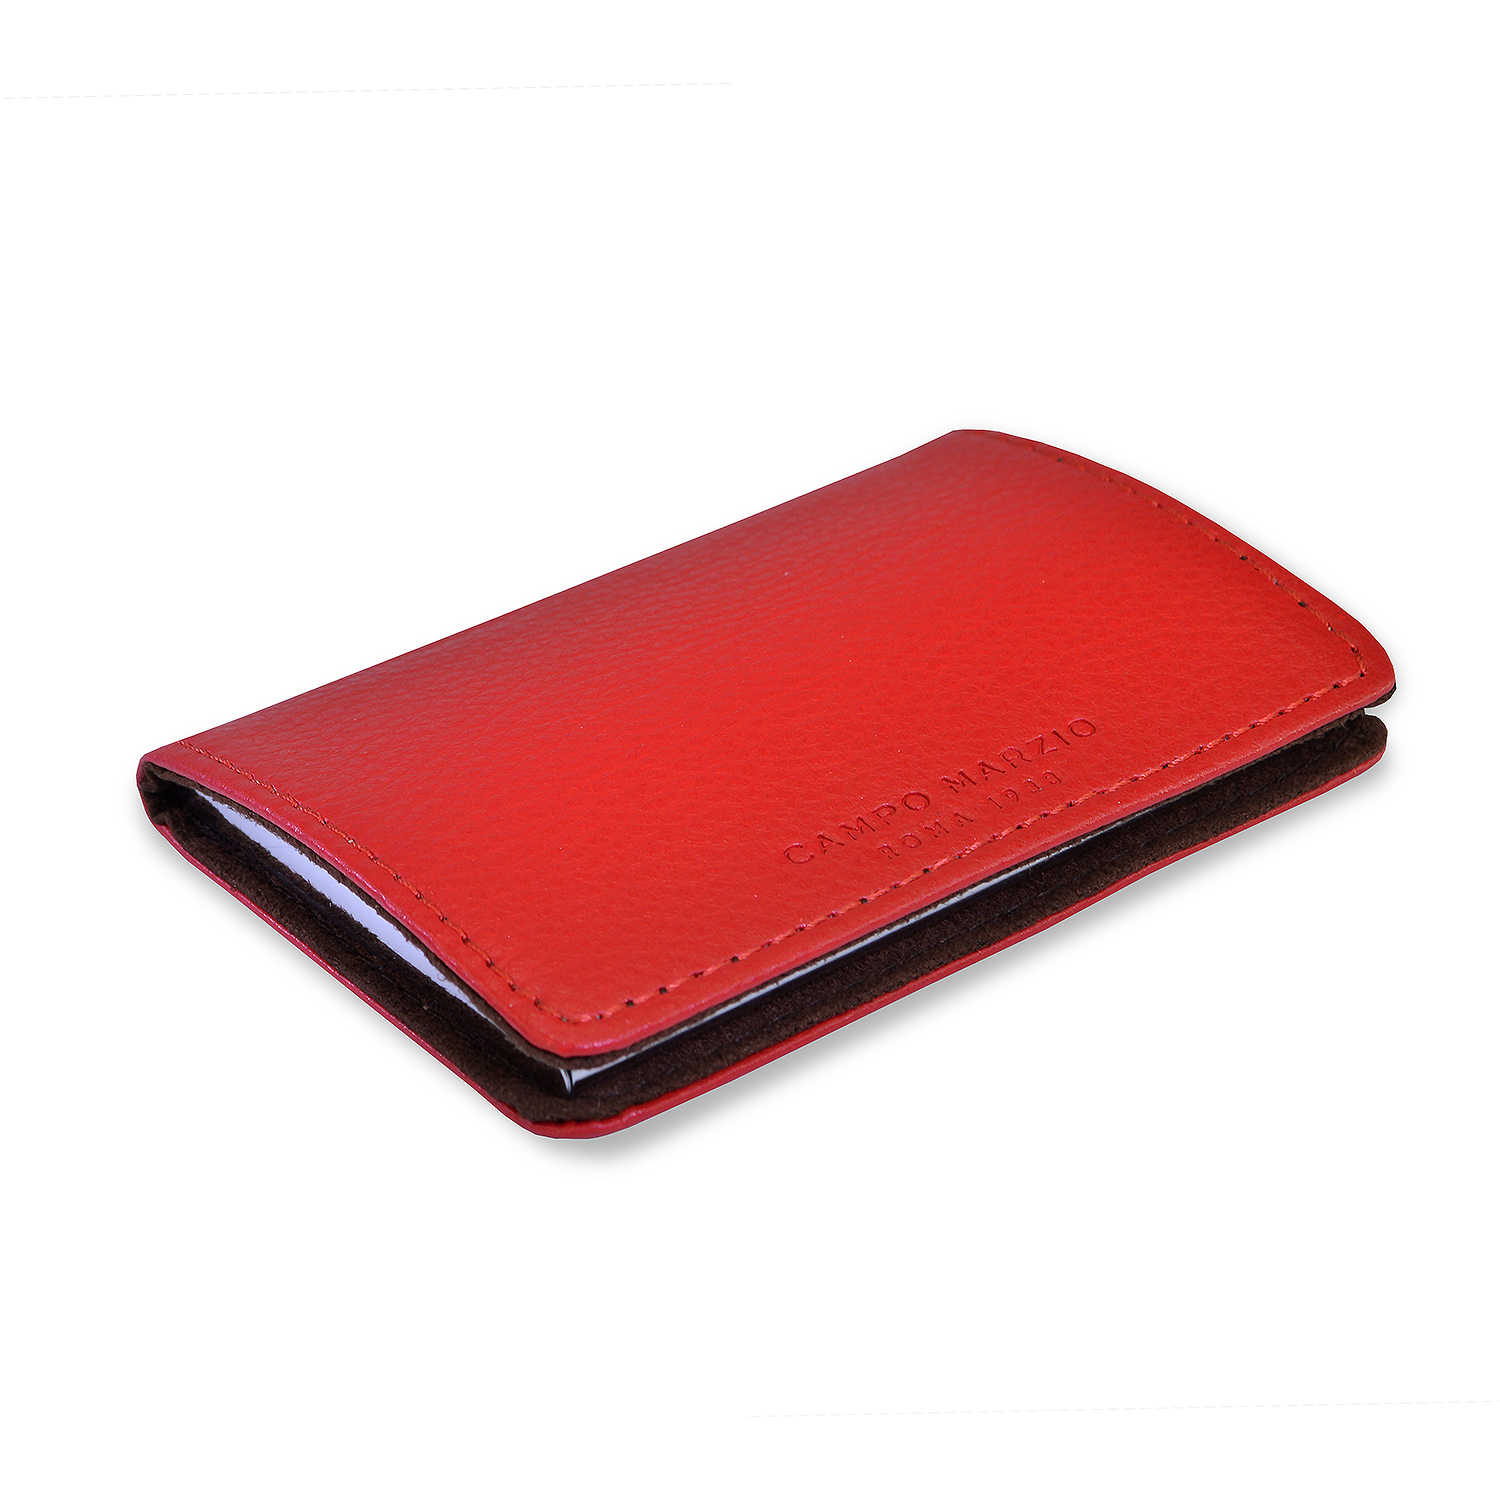 CAMPO MARZIO / LEATHER CARD HOLDER - Type Center